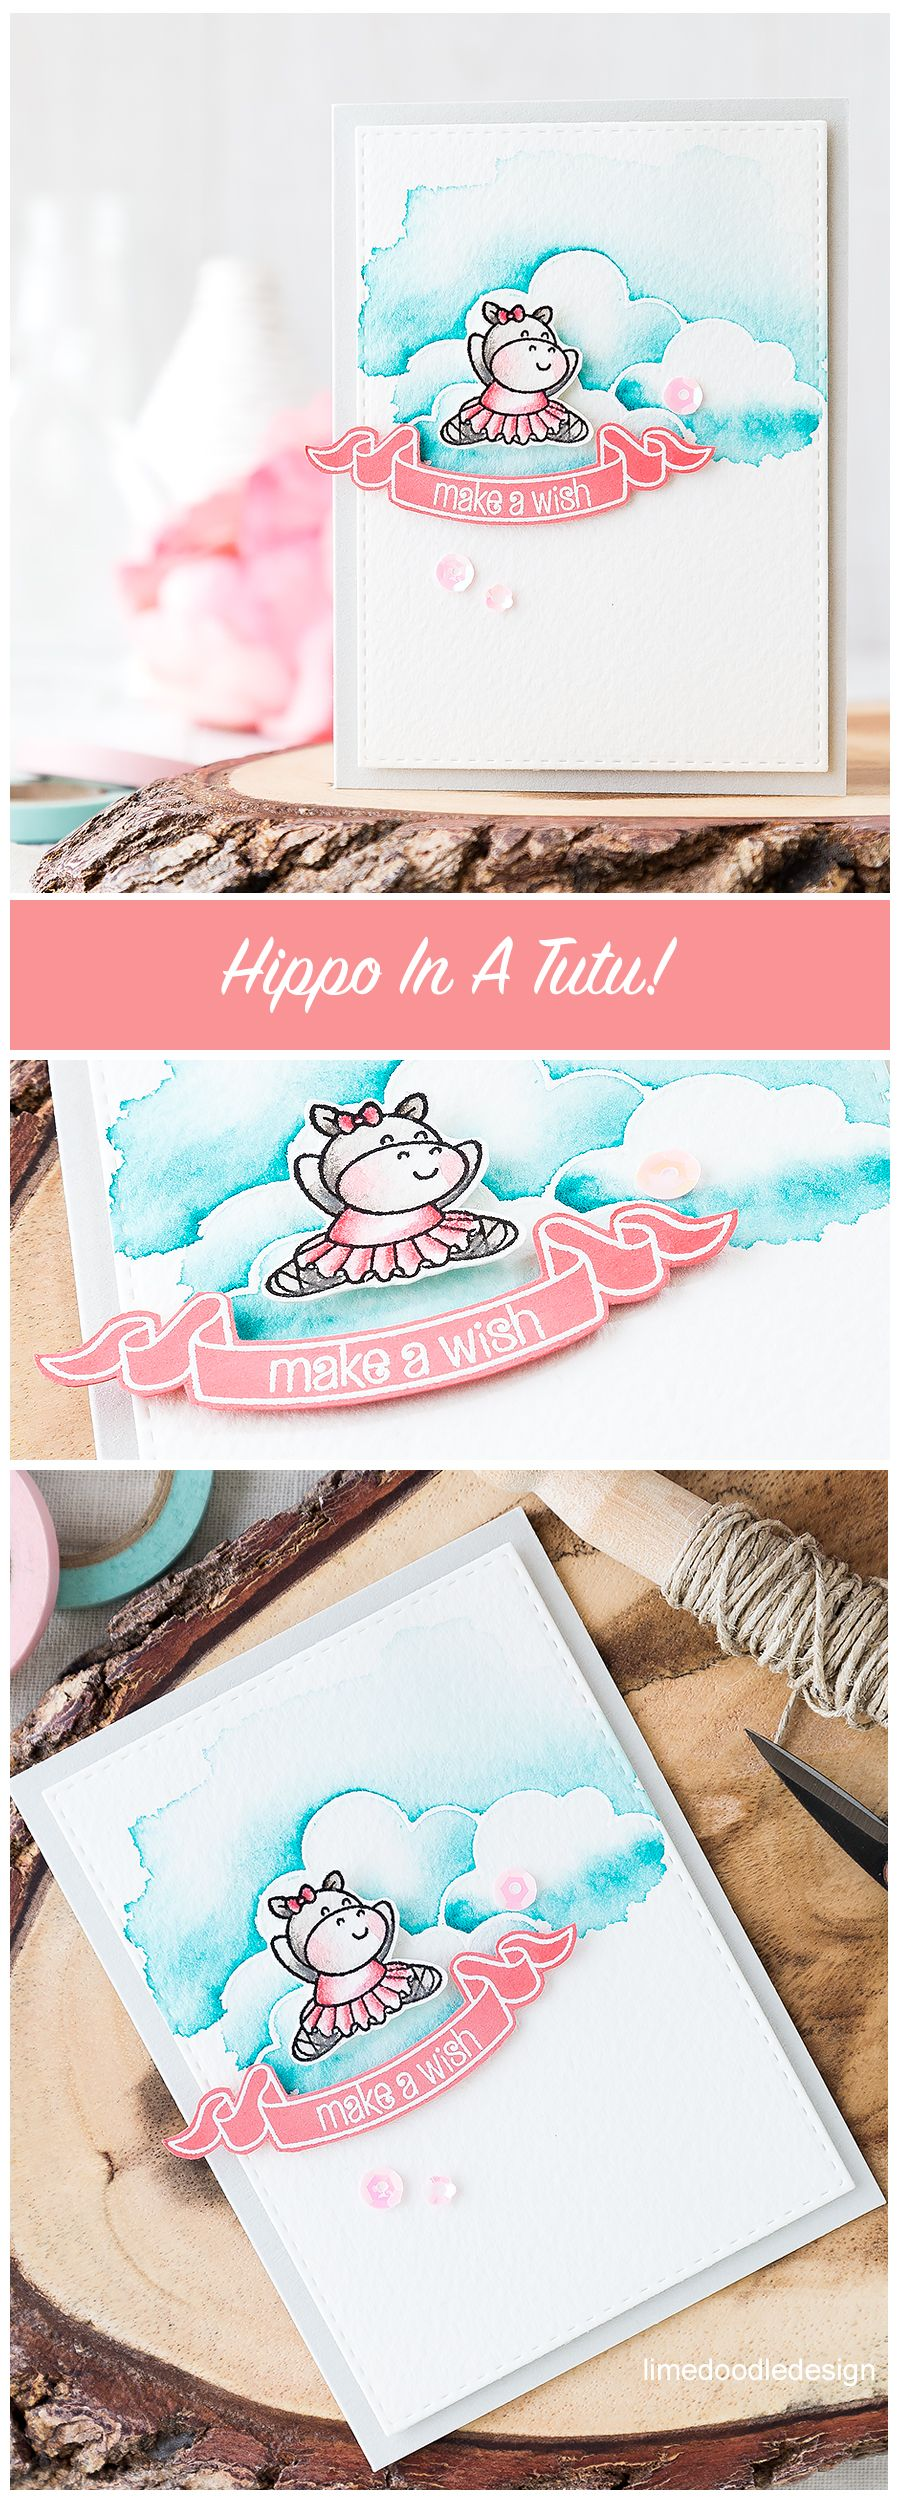 Make A Wish Hippo In A Pink Tutu! (With images